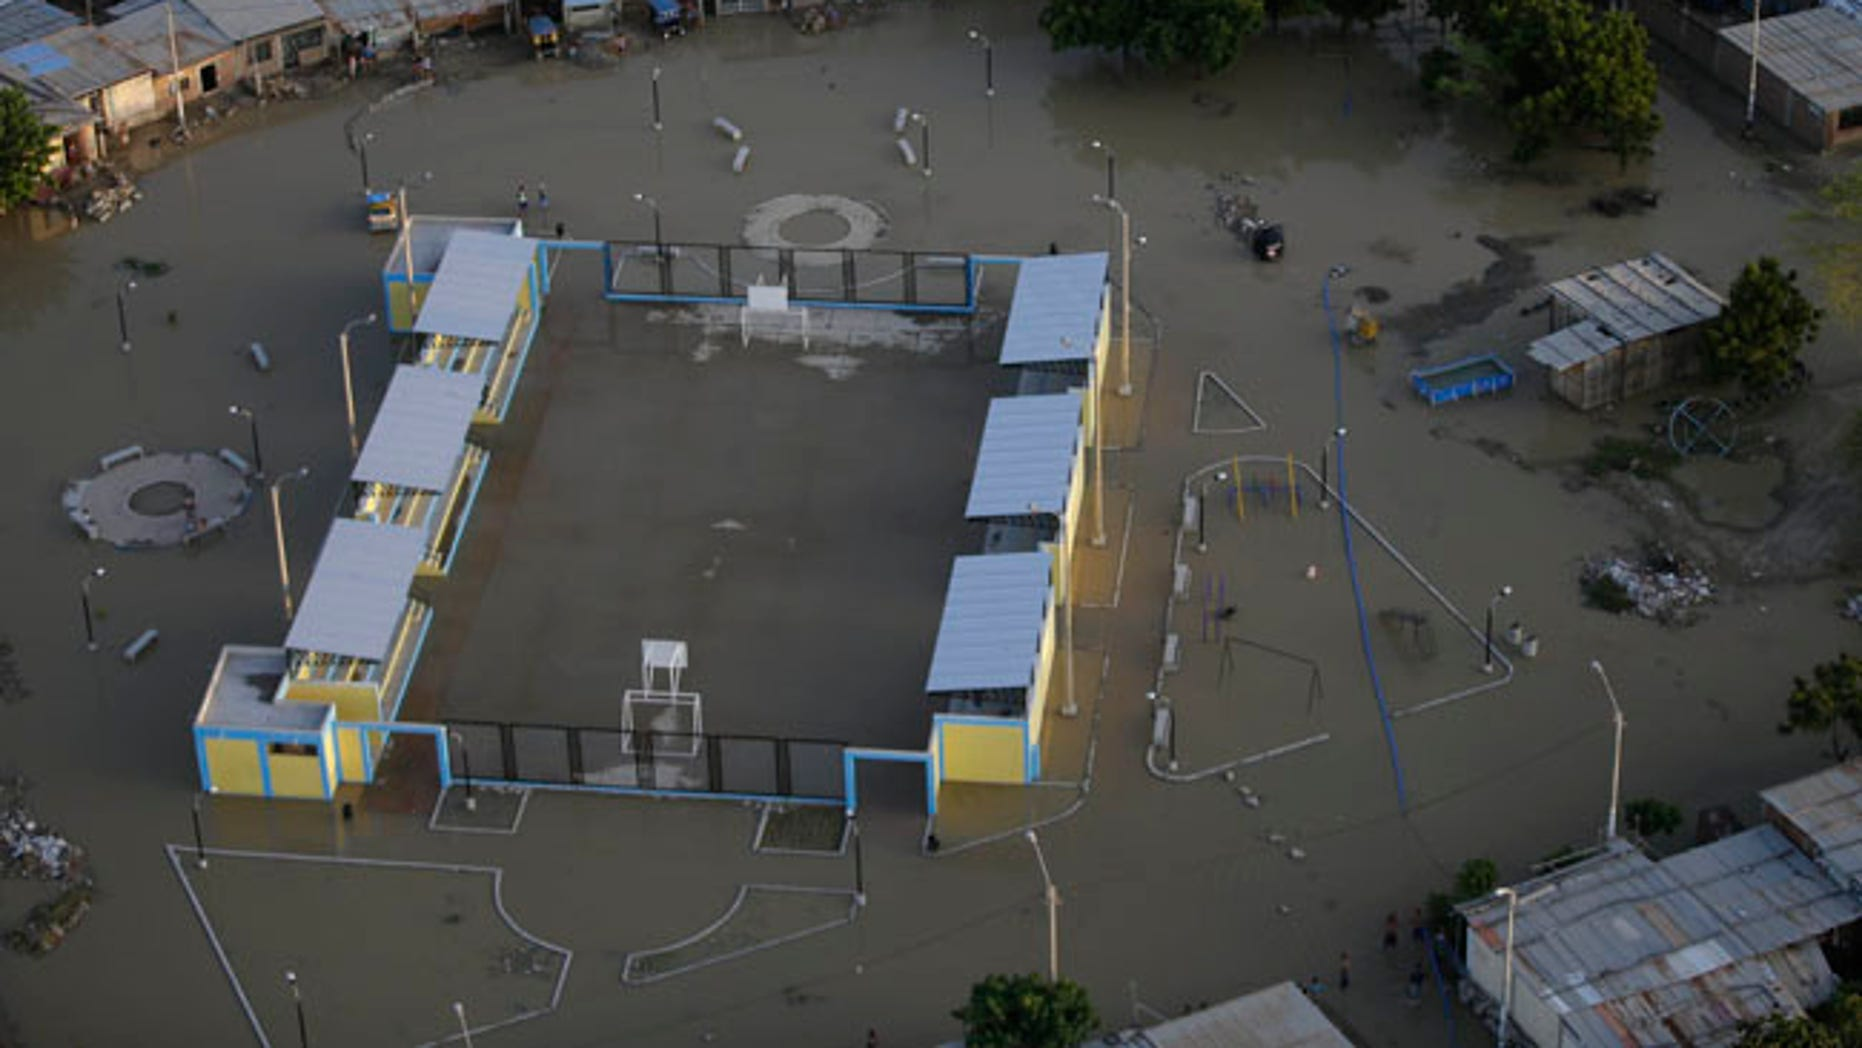 A flooded neighborhood in Piura, Peru, on Wednesday, March 22, 2017. Intense rain, overflowing rivers and mudslides have hit the country.